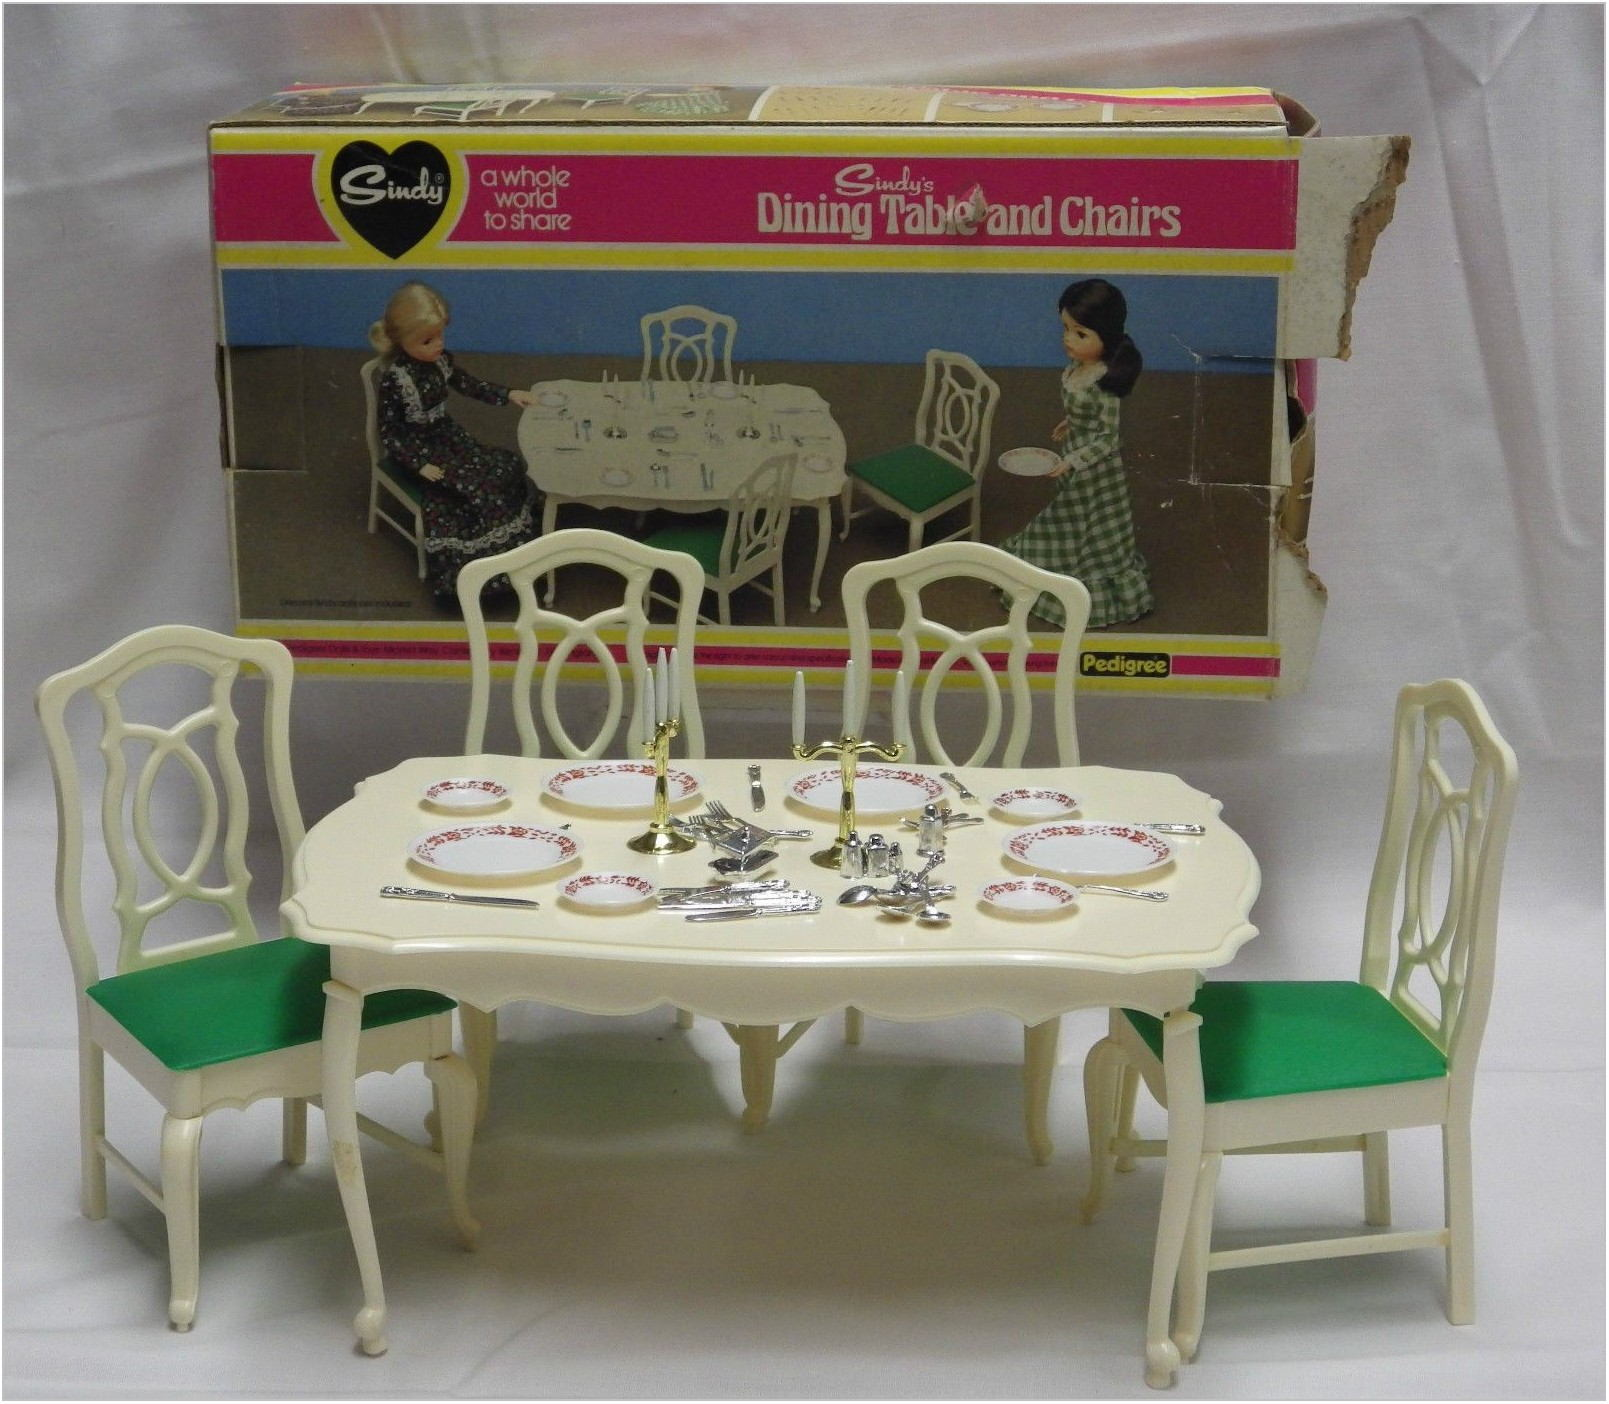 Sindy Dining Room Set